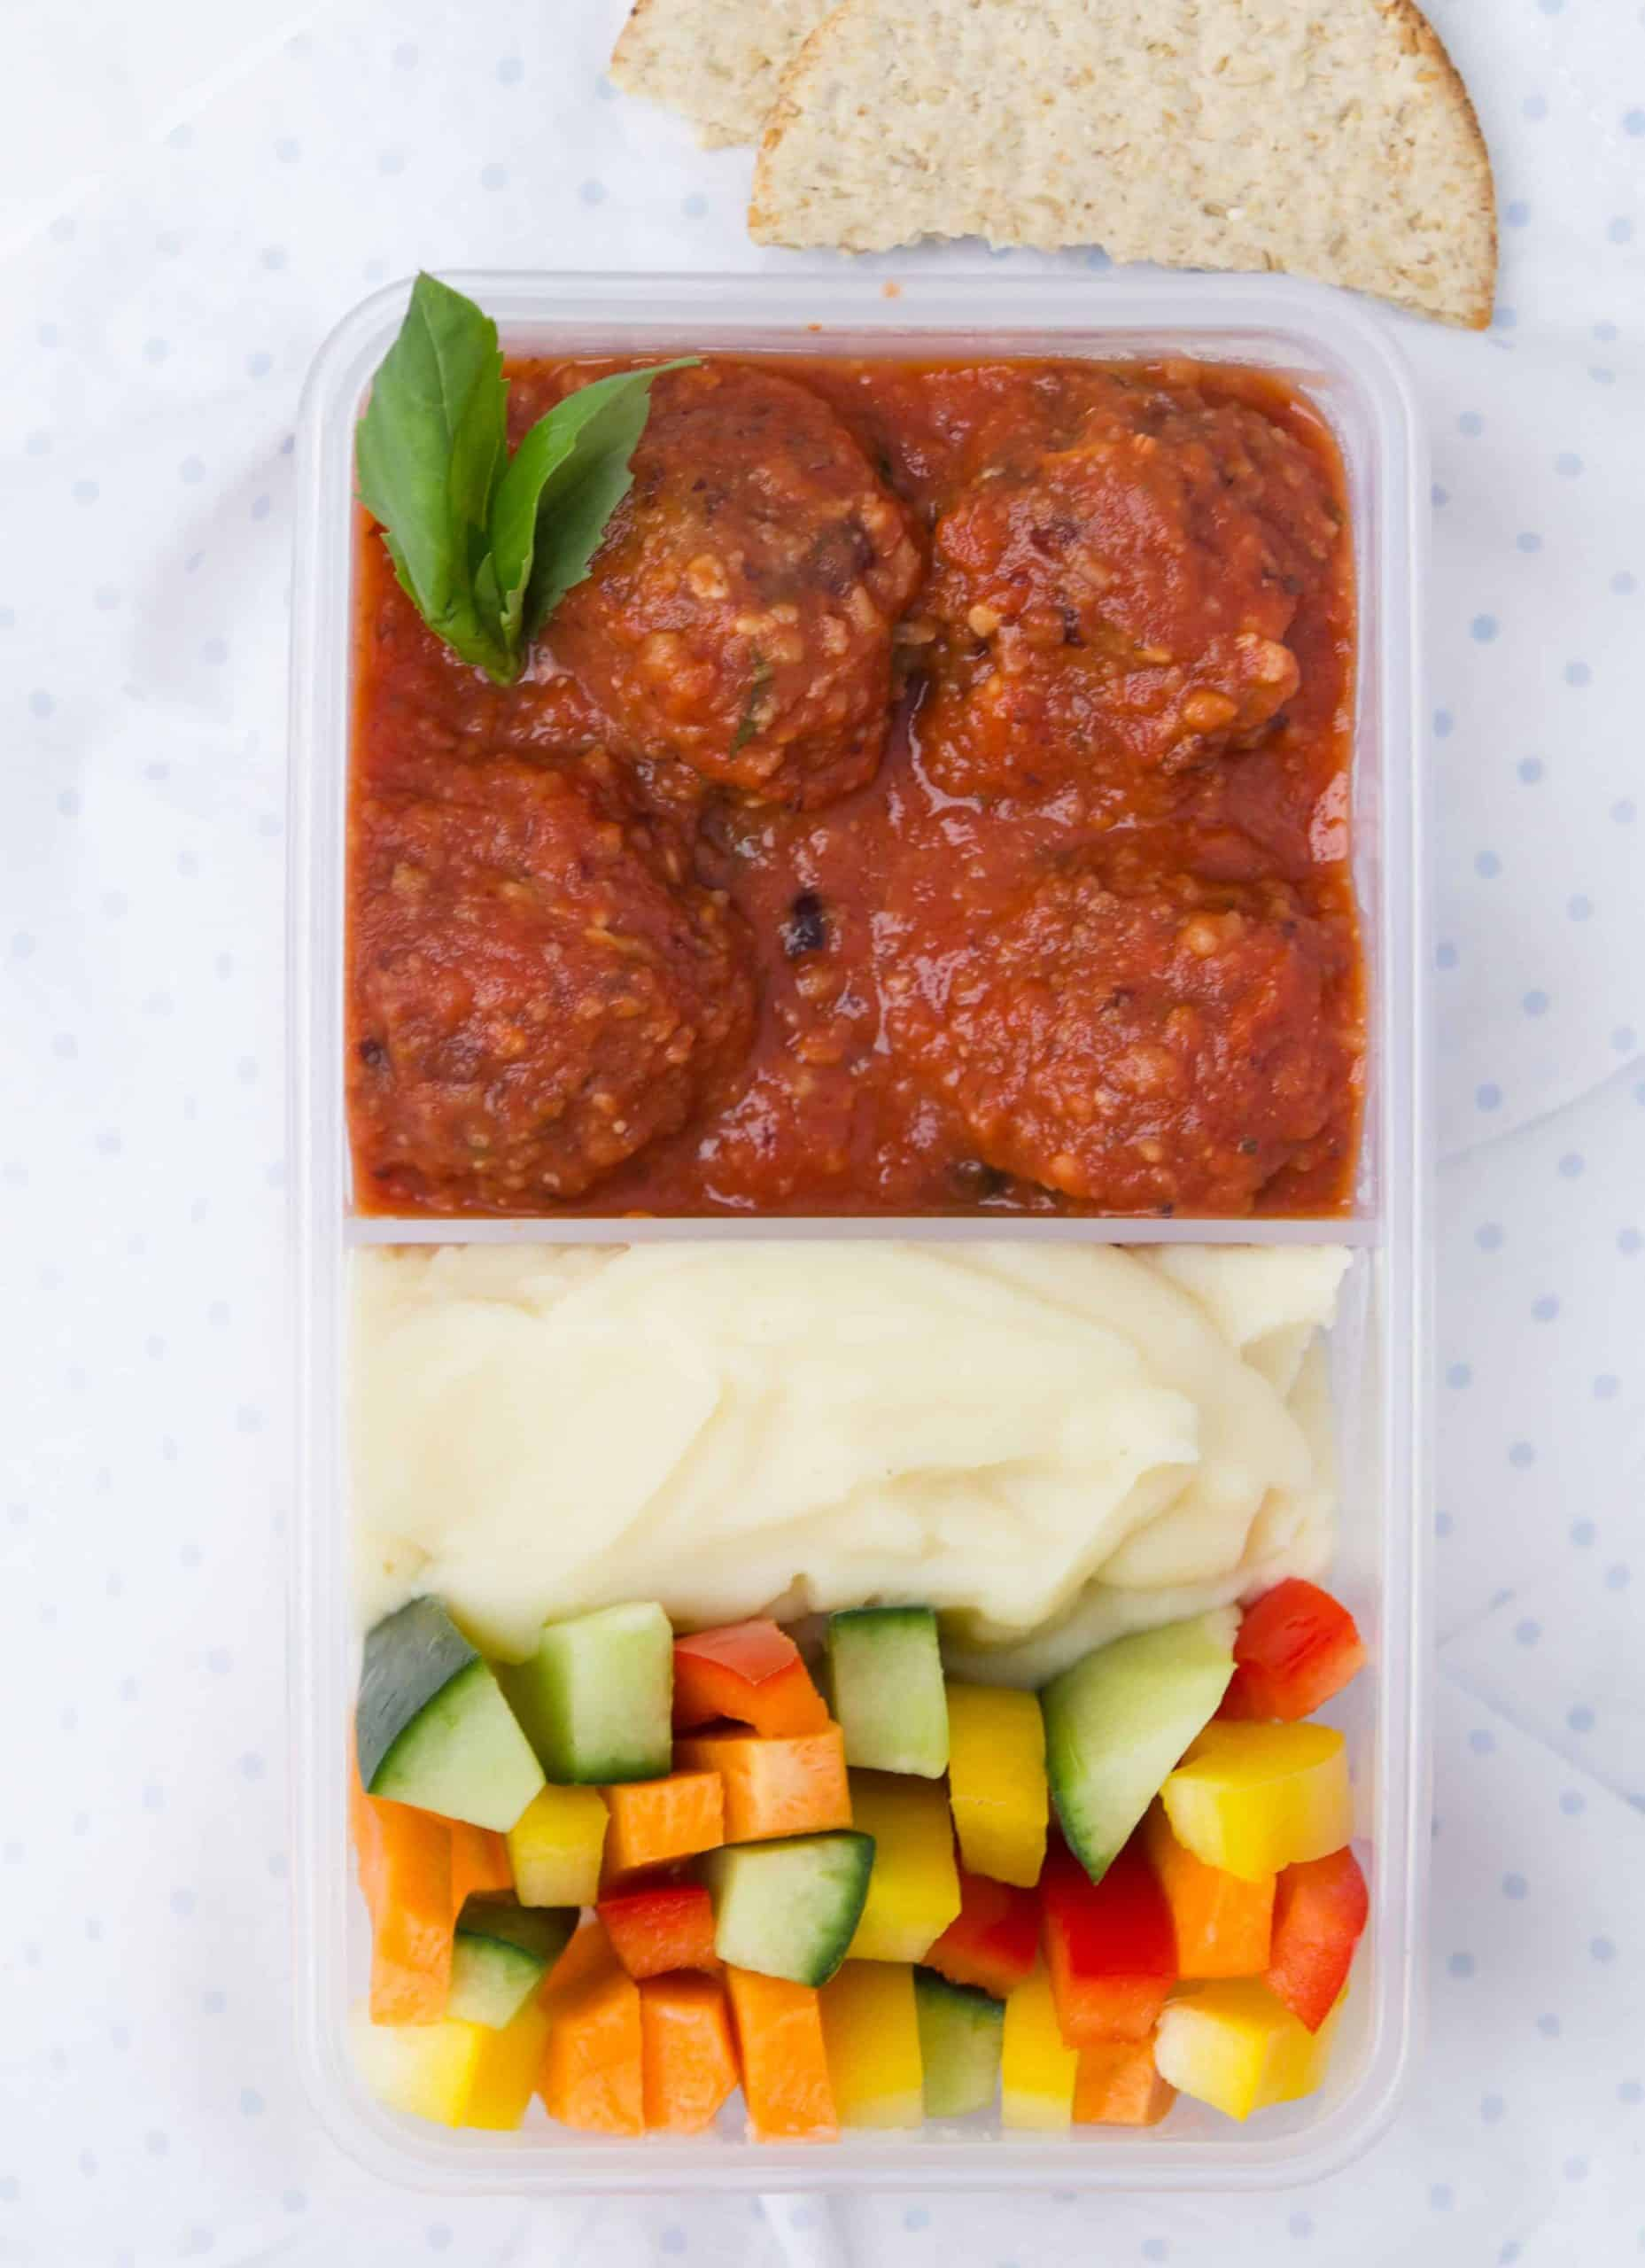 Vegan meatballs in tomato sauce in a meal prep container with veggie batons and mashed potatoes - The clever meal.